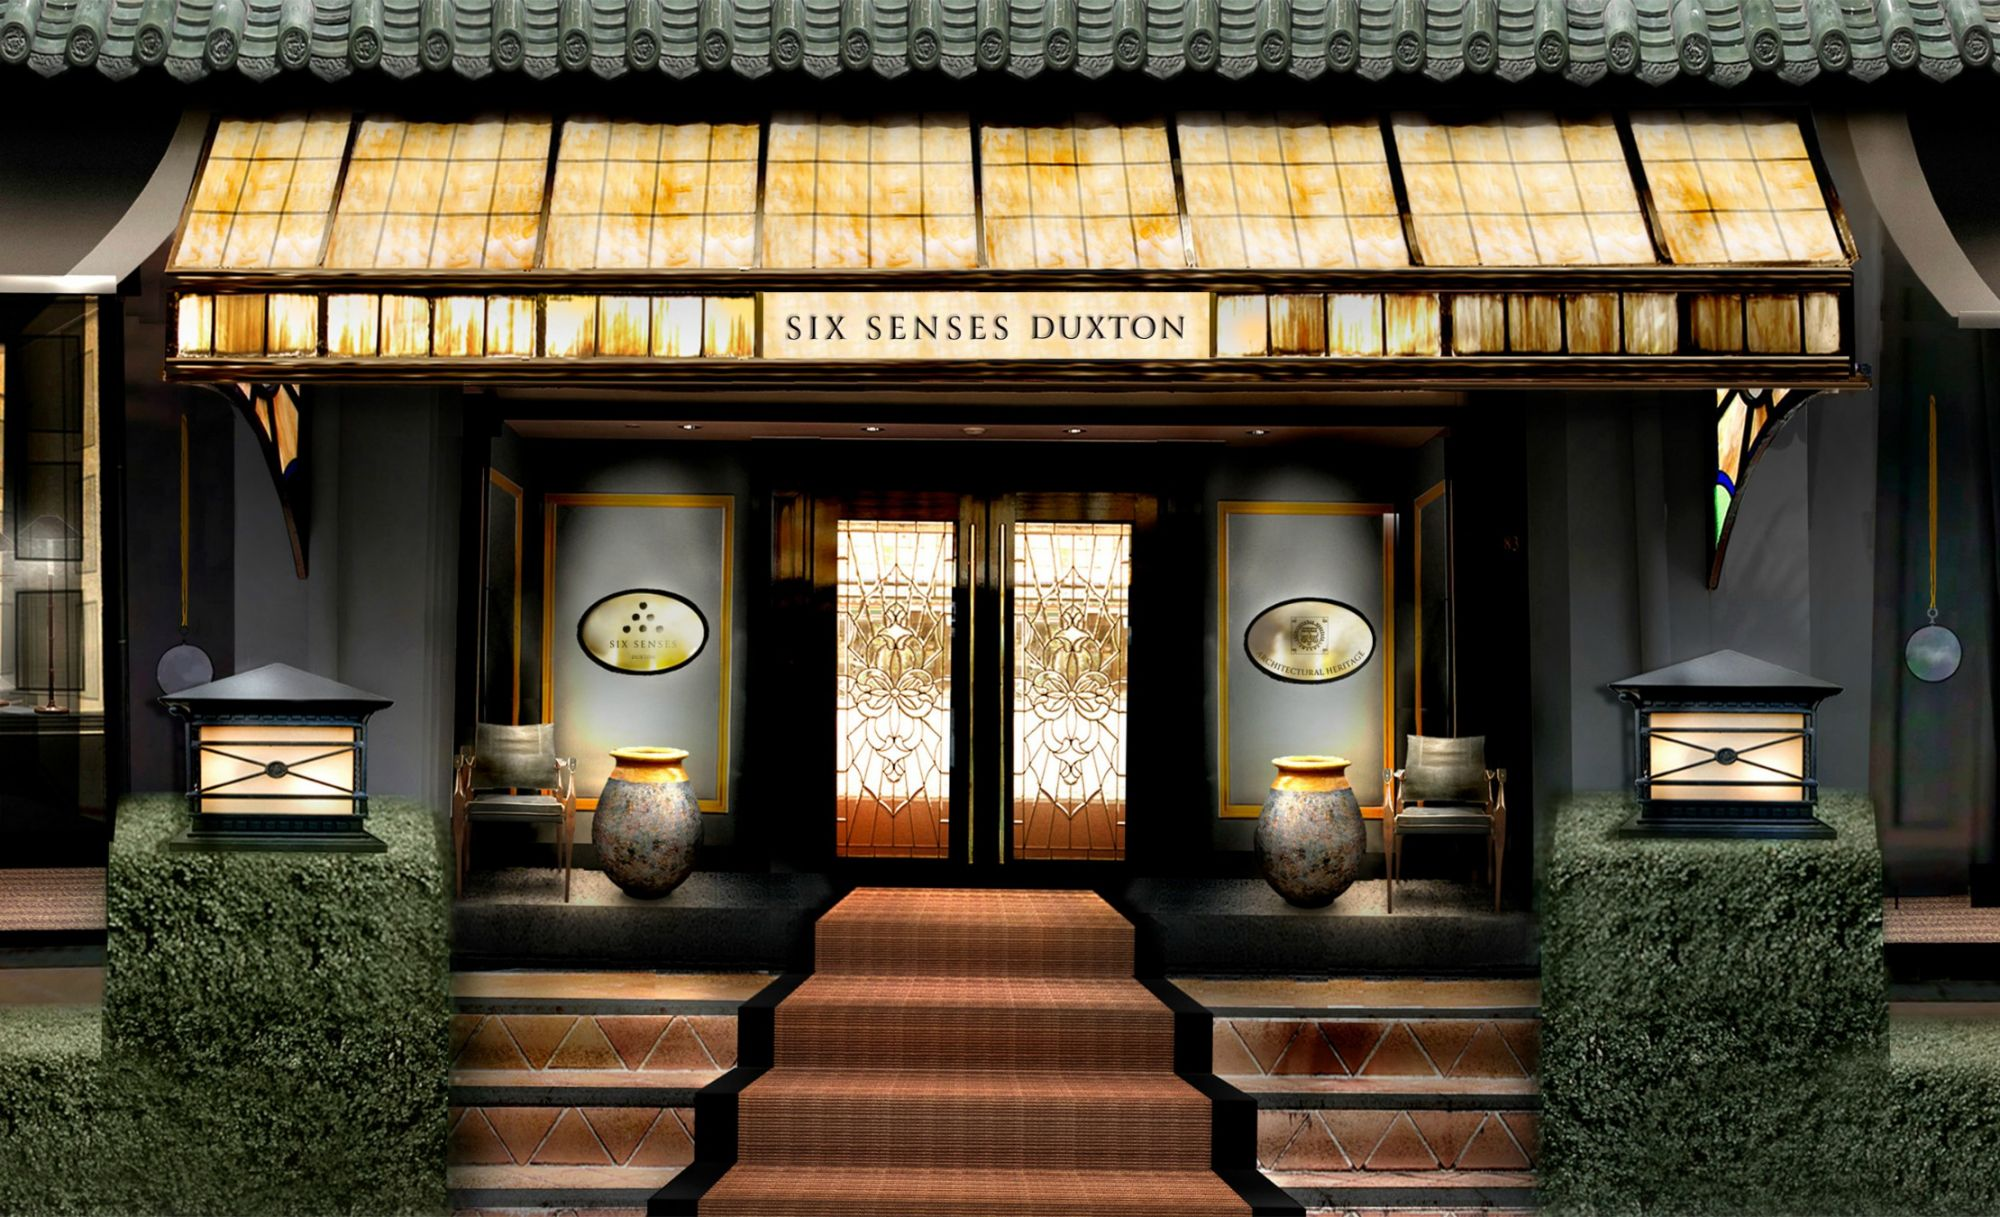 Six Senses To Open First City Hotel In Singapore In 2018